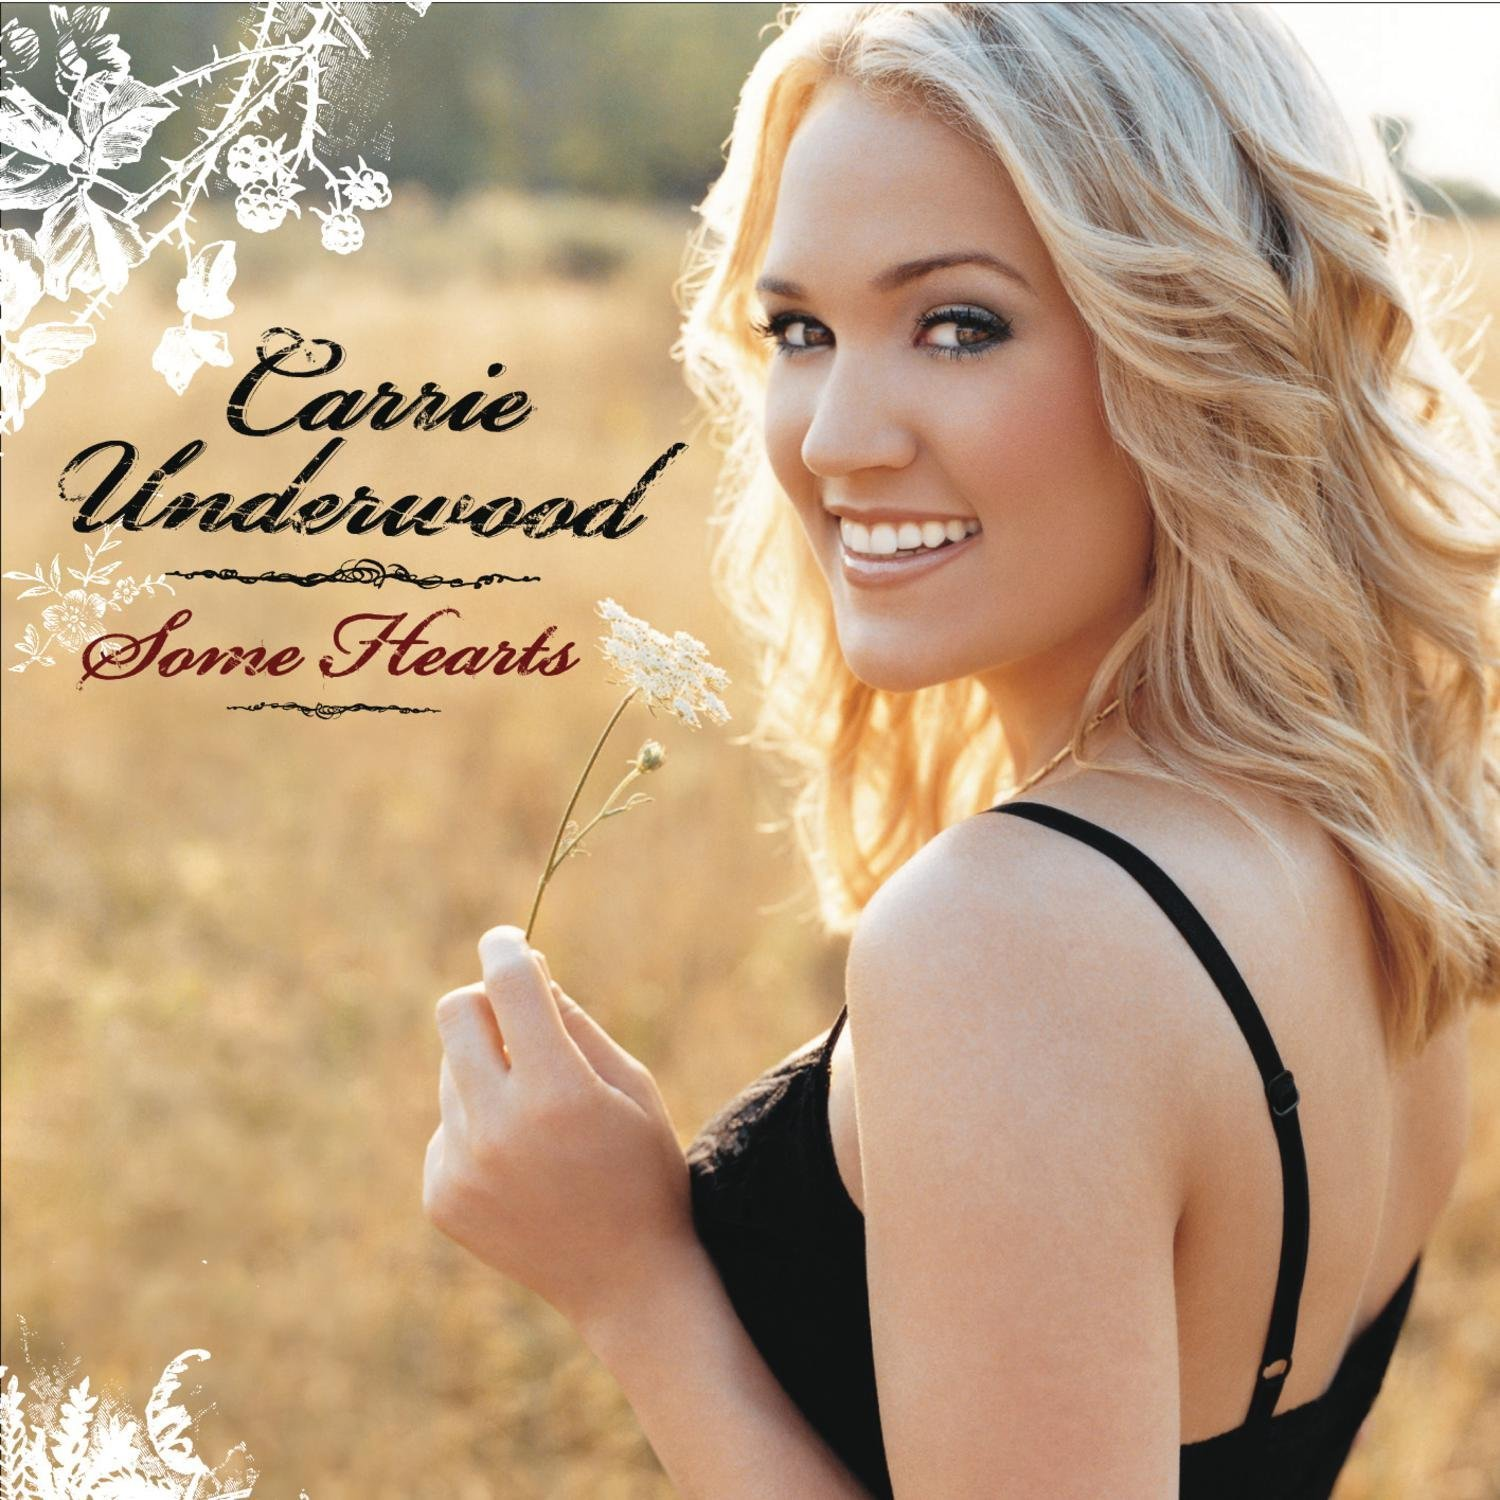 Carrie Underwood - Some Hearts.jpg